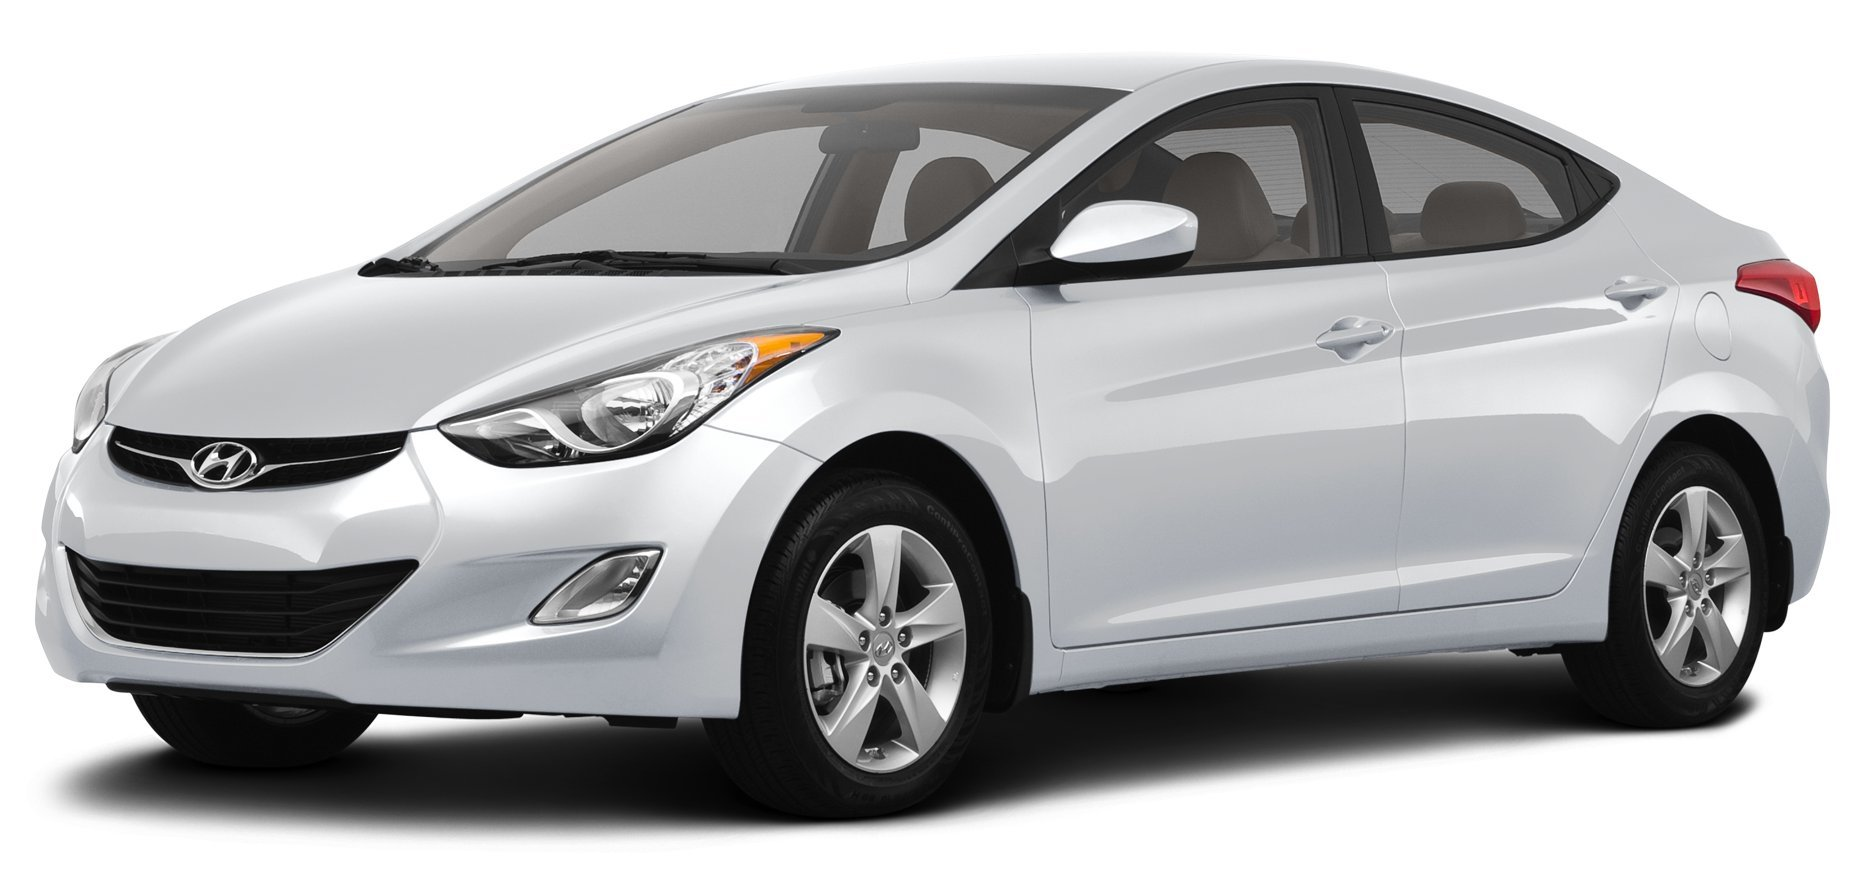 2013 hyundai elantra reviews images and. Black Bedroom Furniture Sets. Home Design Ideas